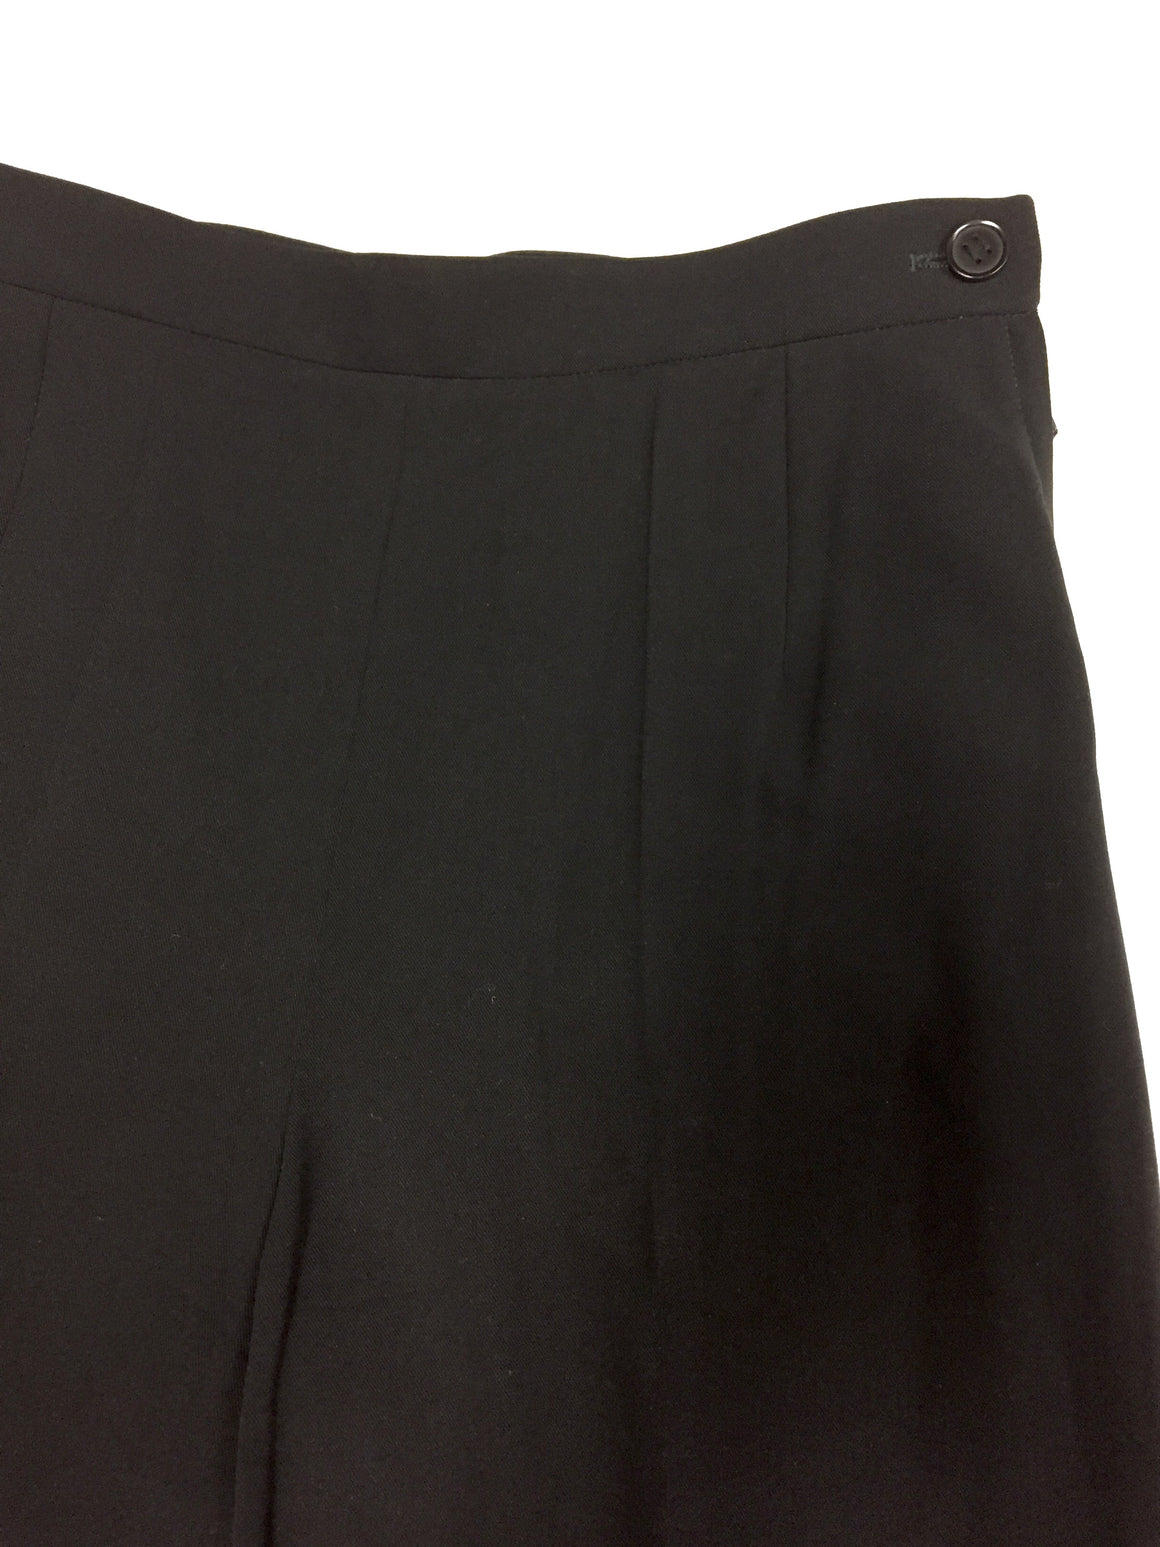 HERMES Black Wool-Blend Gabardine Straight-Leg Classic Dress Pants Size: FR 38 / US 6